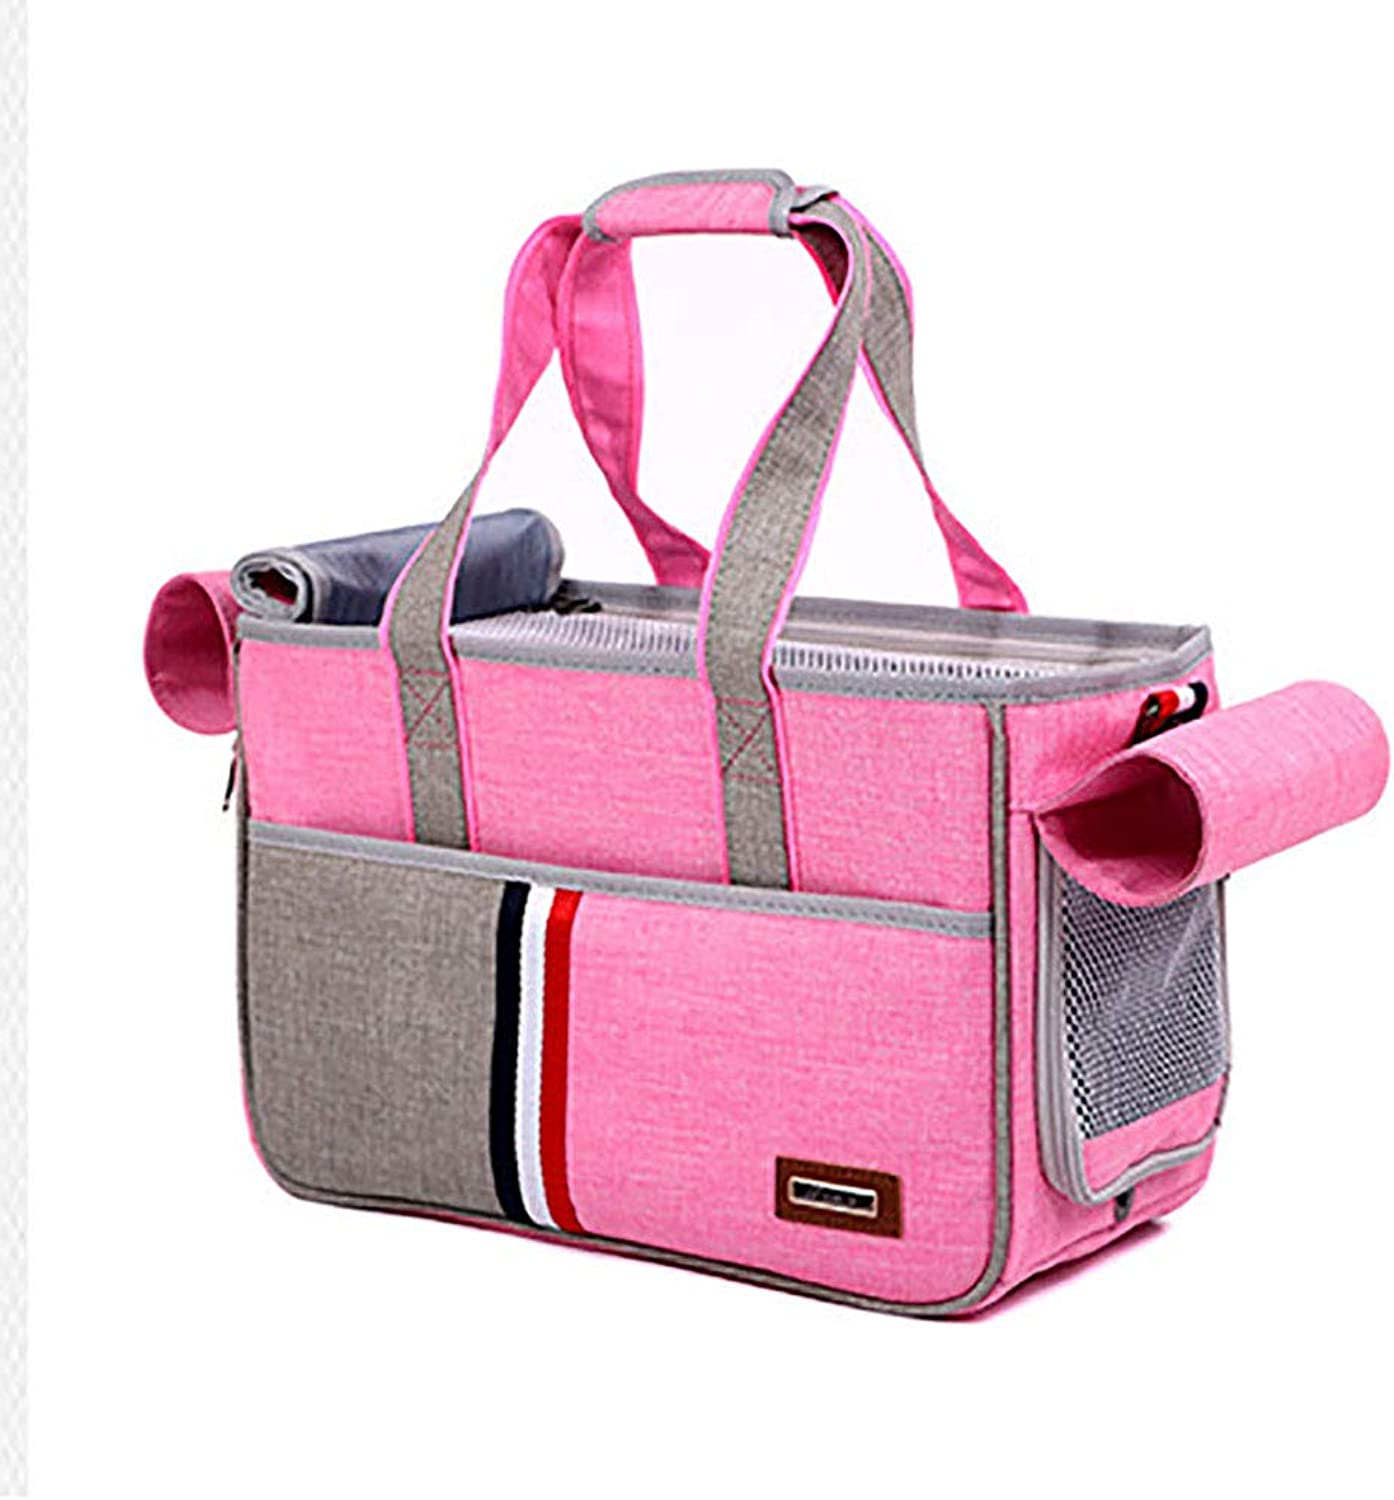 LIULINCUN Fashion Pet Carrier Backpack Cat and Dog Outing Portable Handbag Pet Tote Dog Purse for Travel Walking Hiking,pink,Large 51  20  29cm